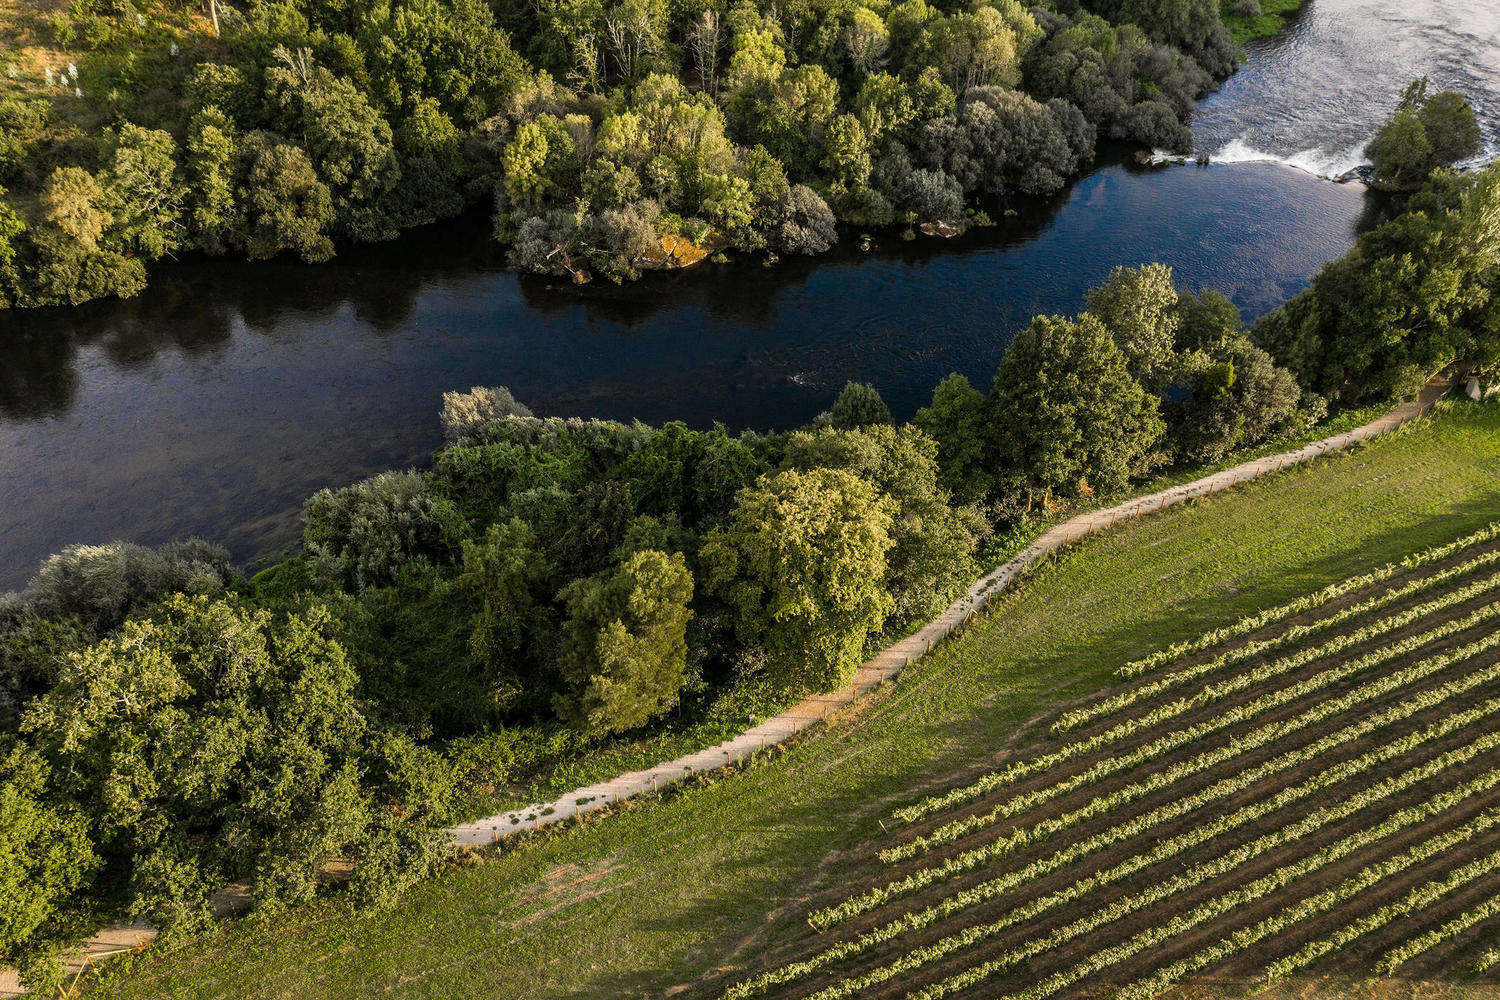 Areal view of Quinta do Ameal vineyards by the Lima river.